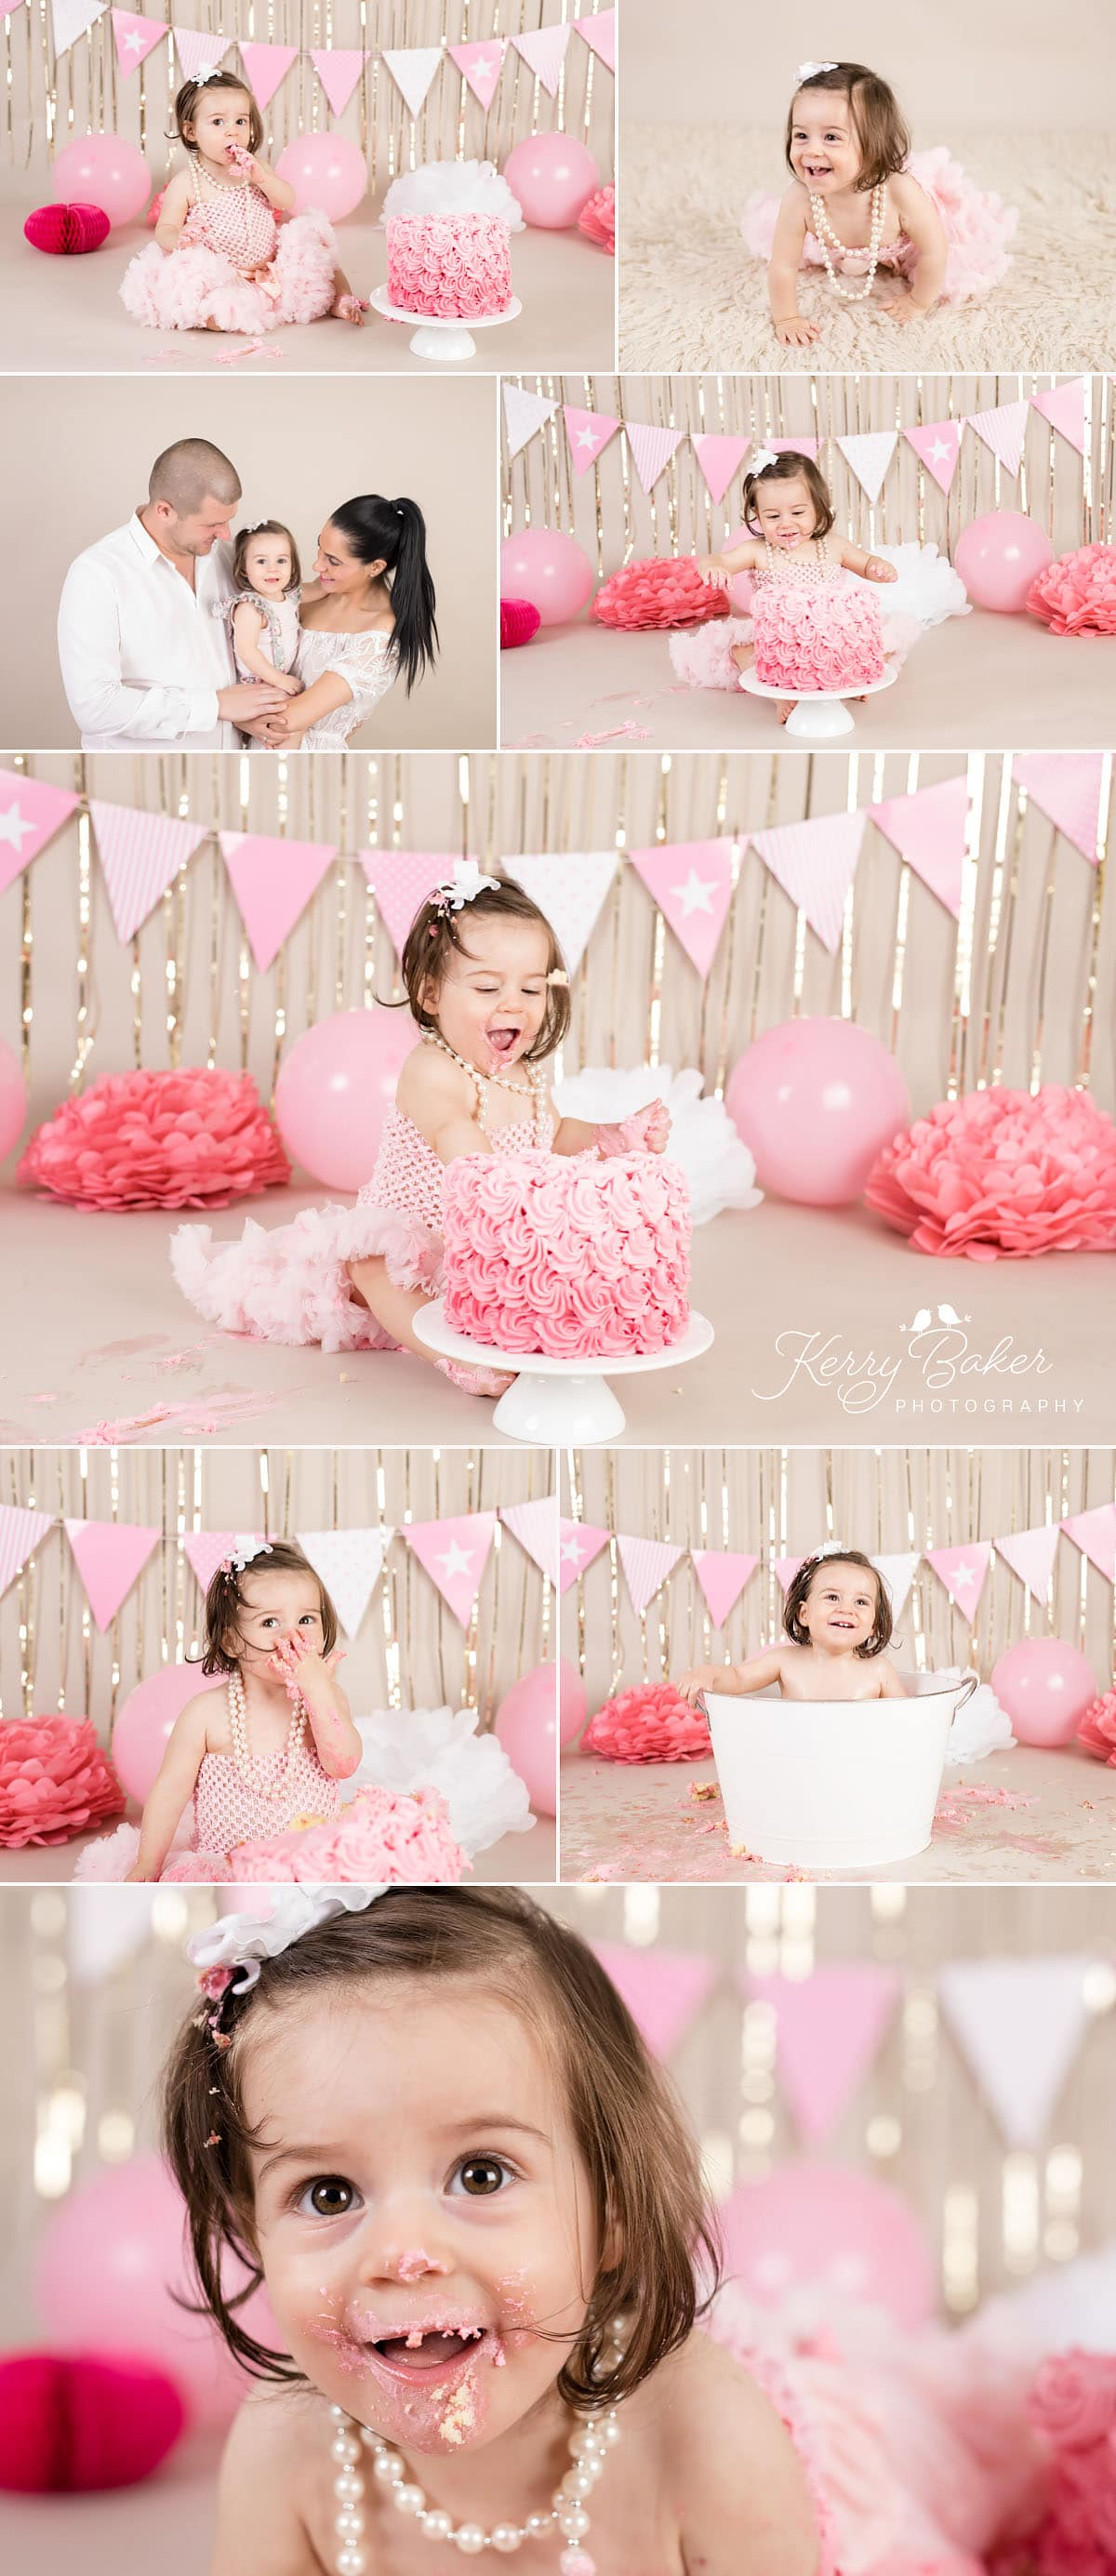 Cake smash photos in perth baby girl one year old